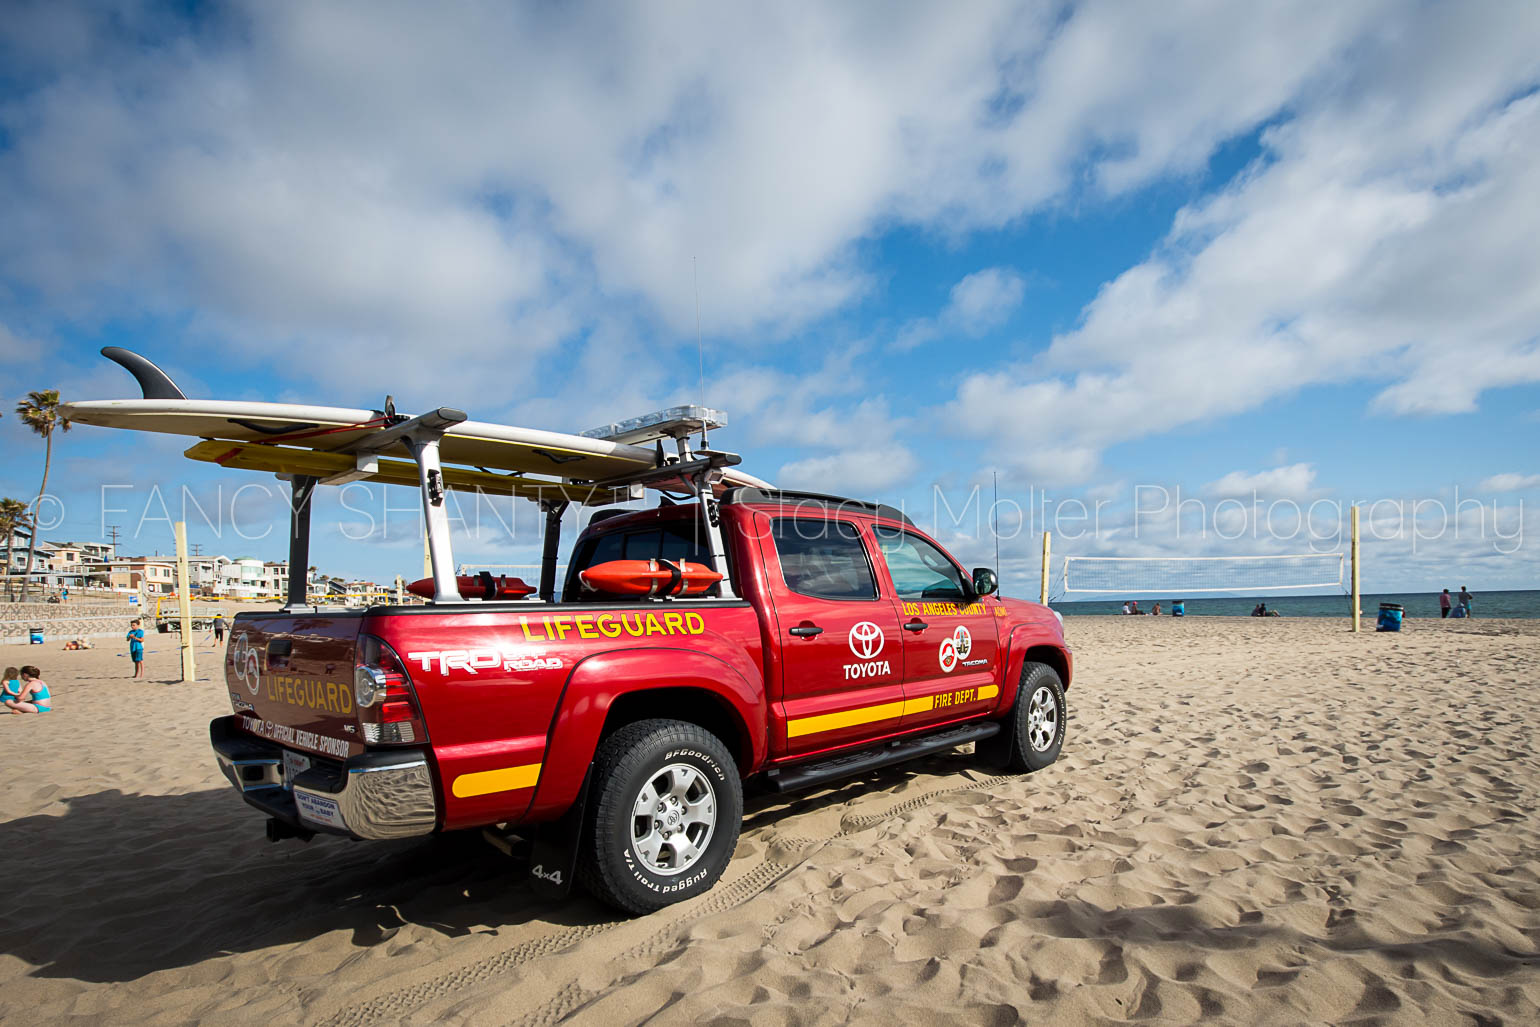 LA County Lifeguards & Toyota Team Up for Beach Water Safety